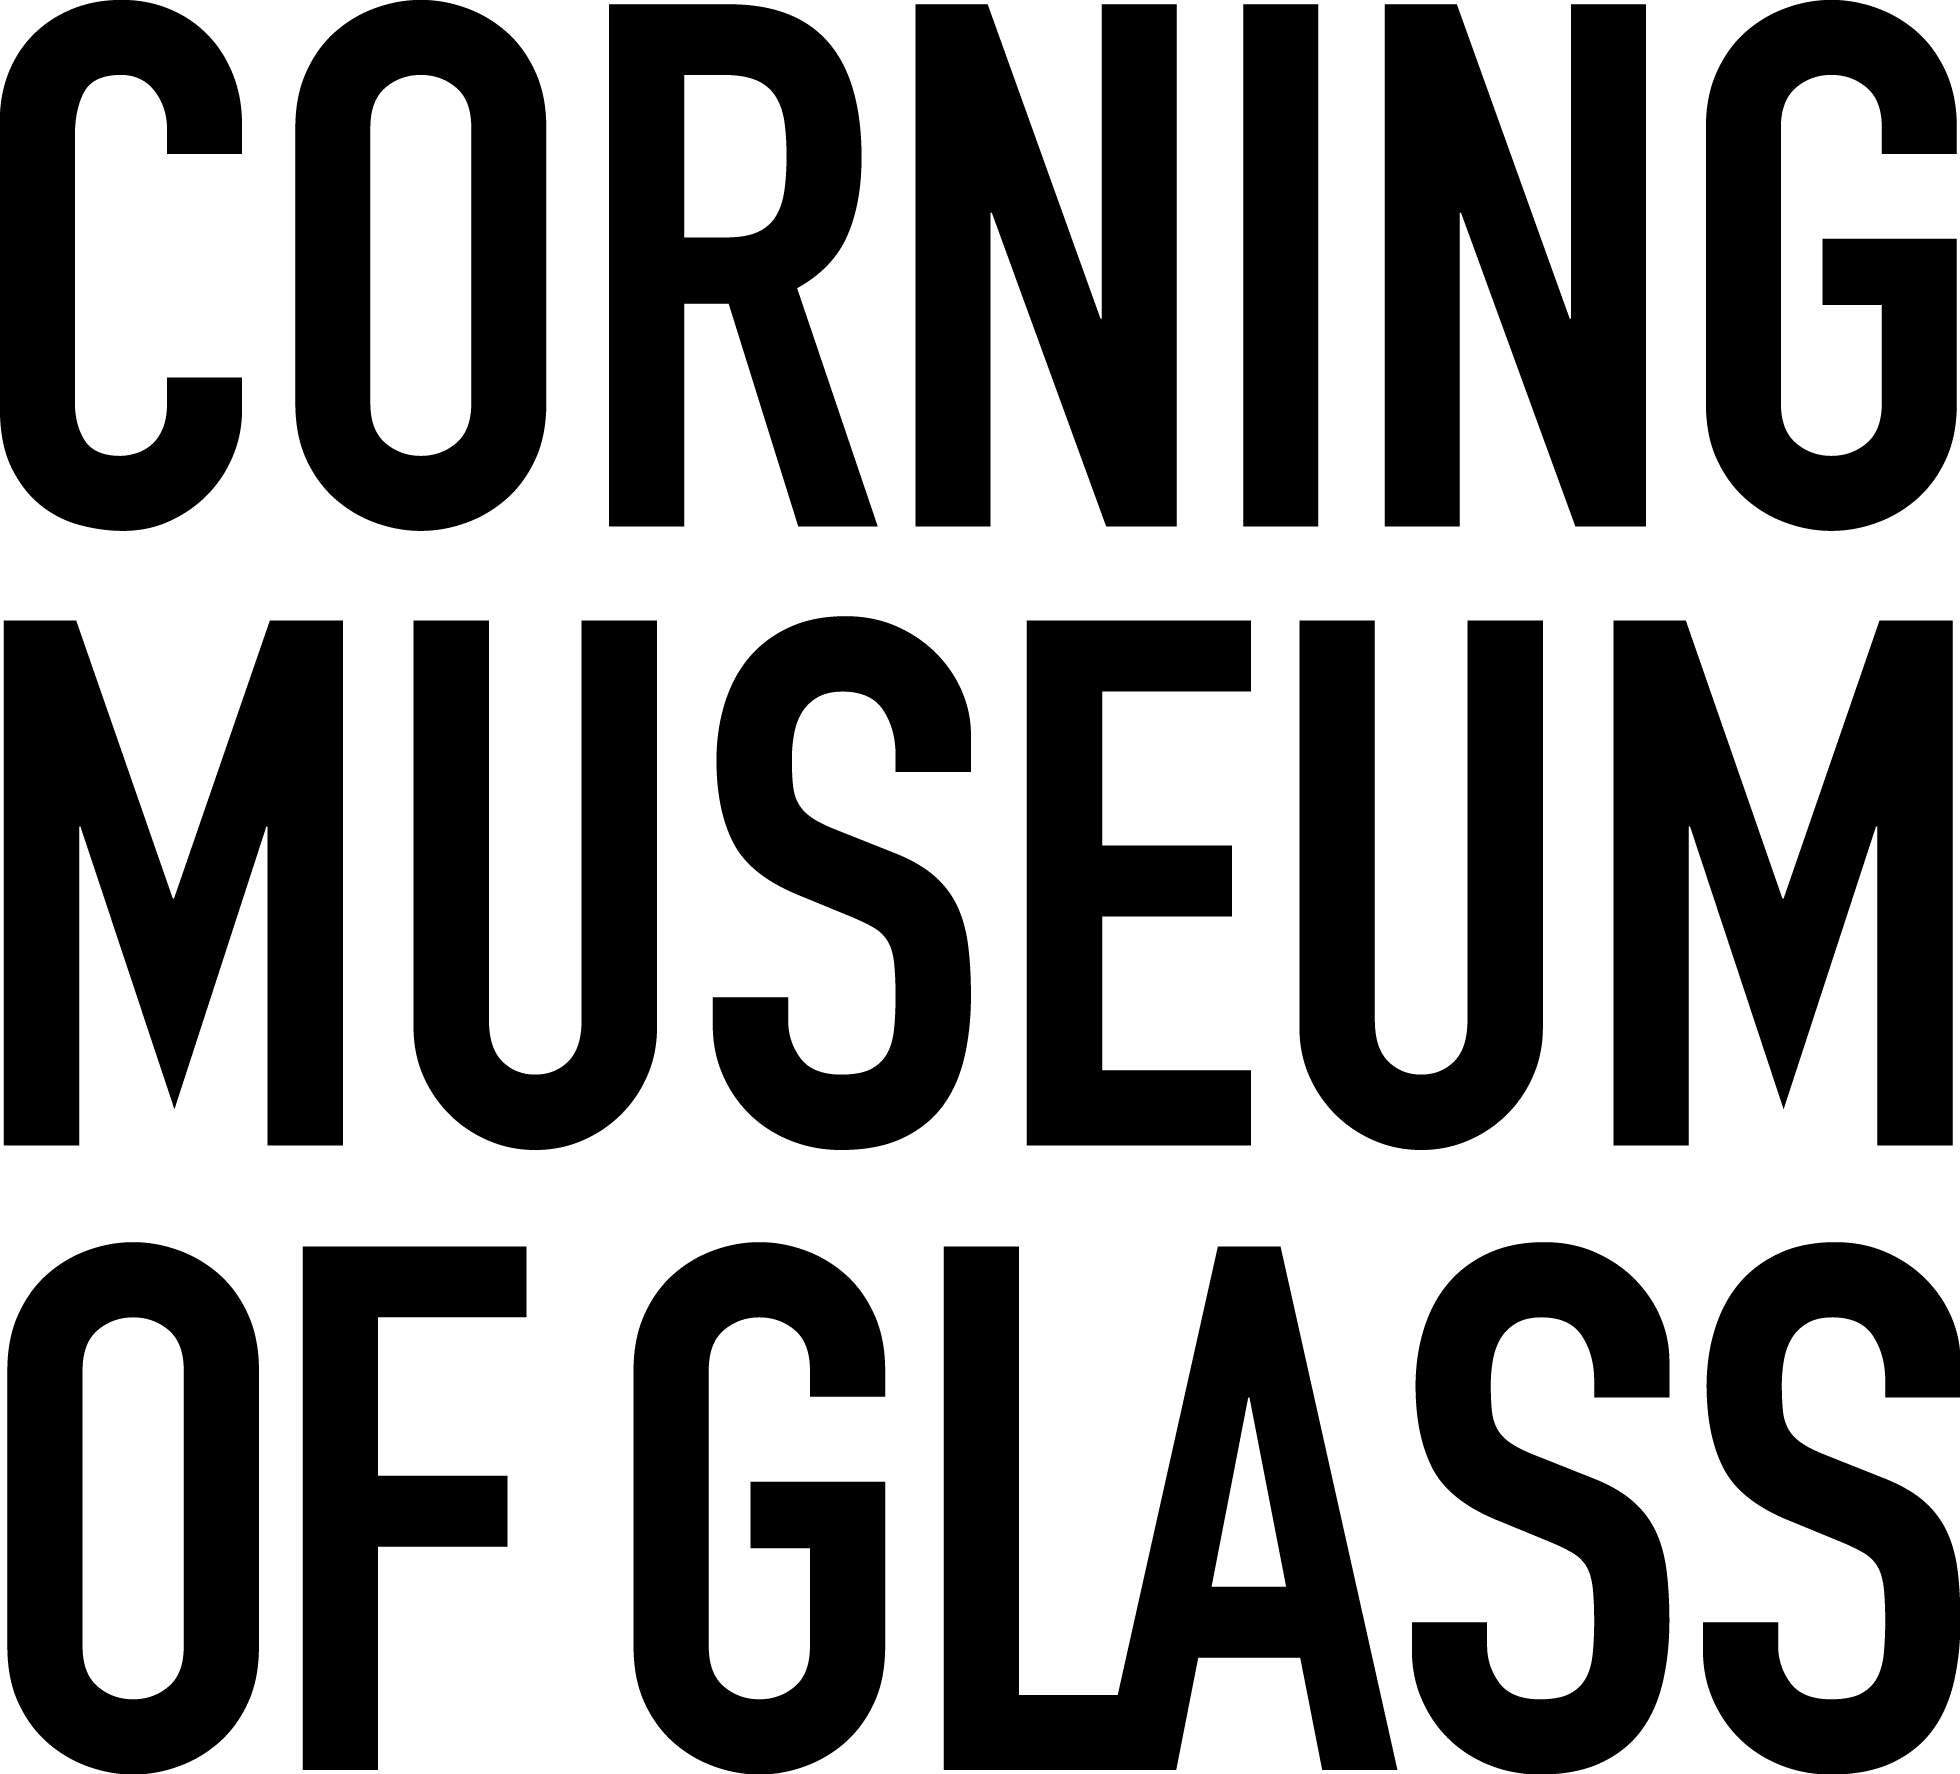 Safety Standout Awards - Corning Museum of Glass